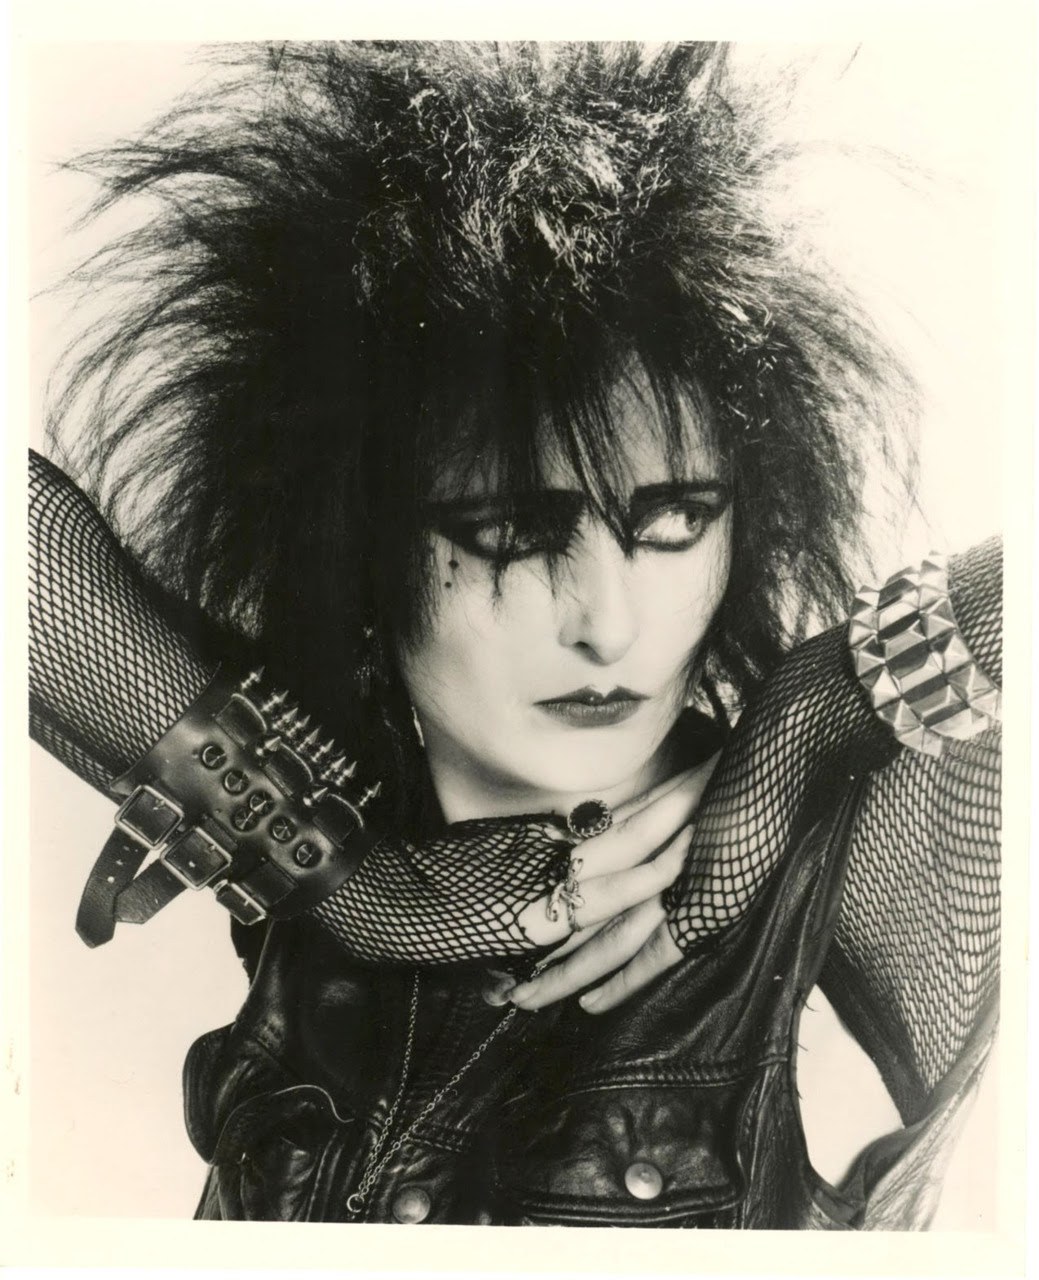 Siouxsie Sioux Imdb The Day Siouxsie Sioux